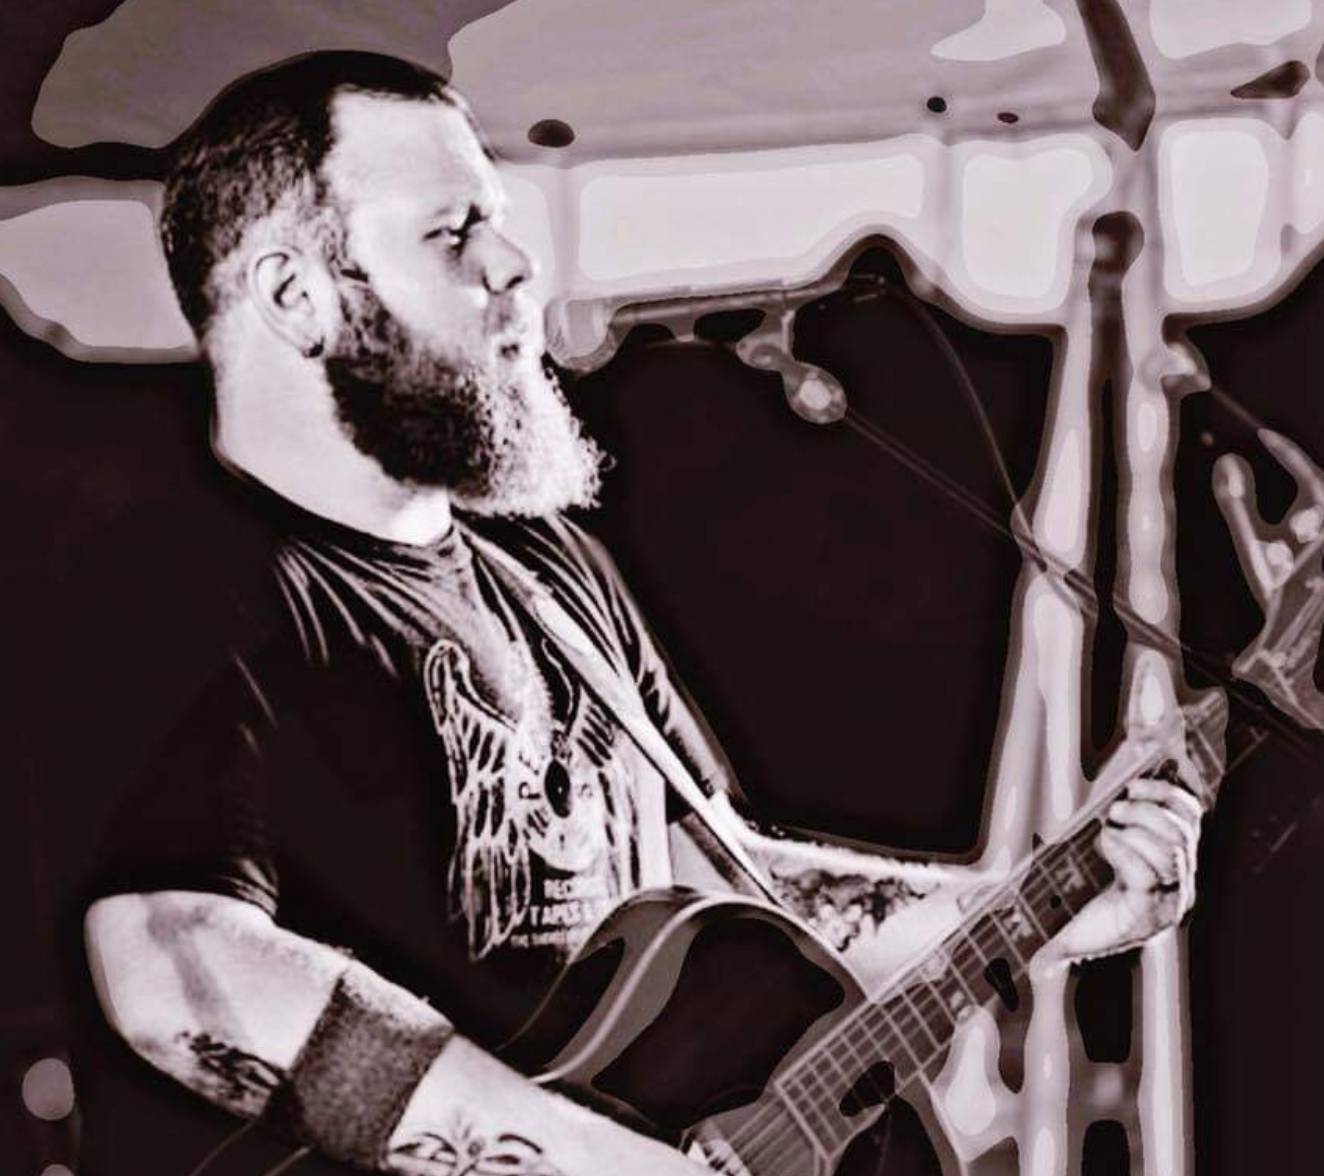 Josh Allison - Live Music at The Pint